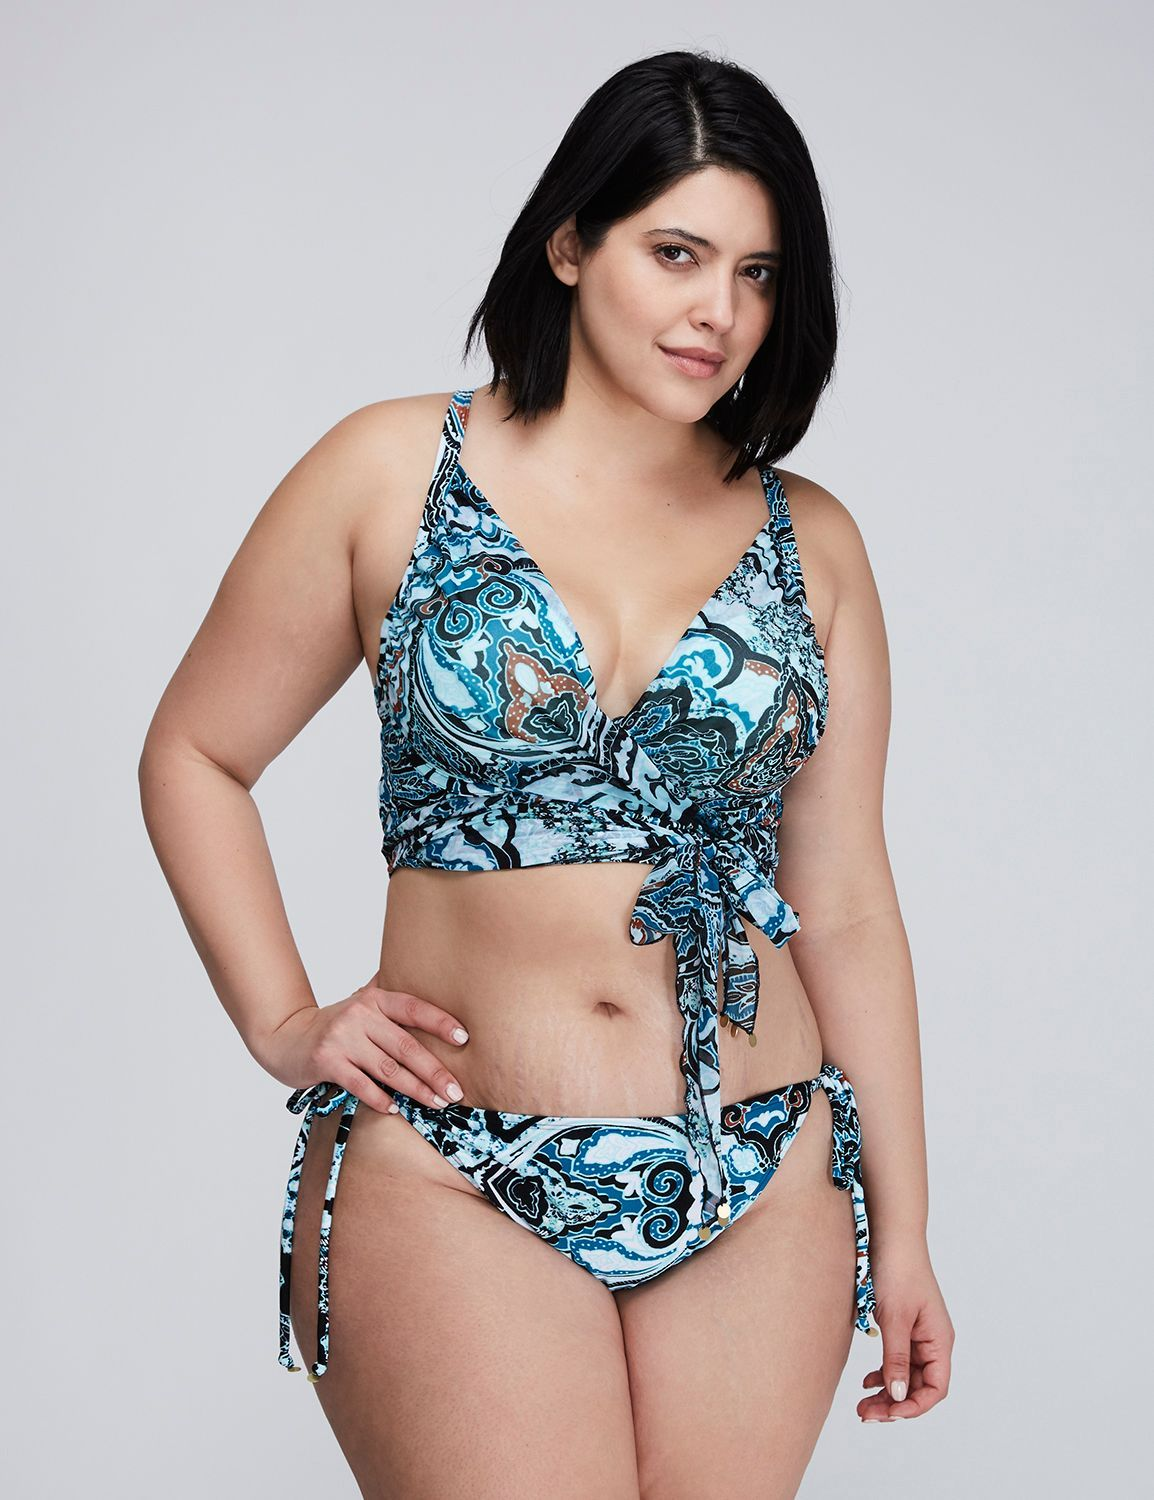 ed05361c36a Plus Size Swimwear 4 You | Fab Plus Size Swimsuits♔ in 2019 ...